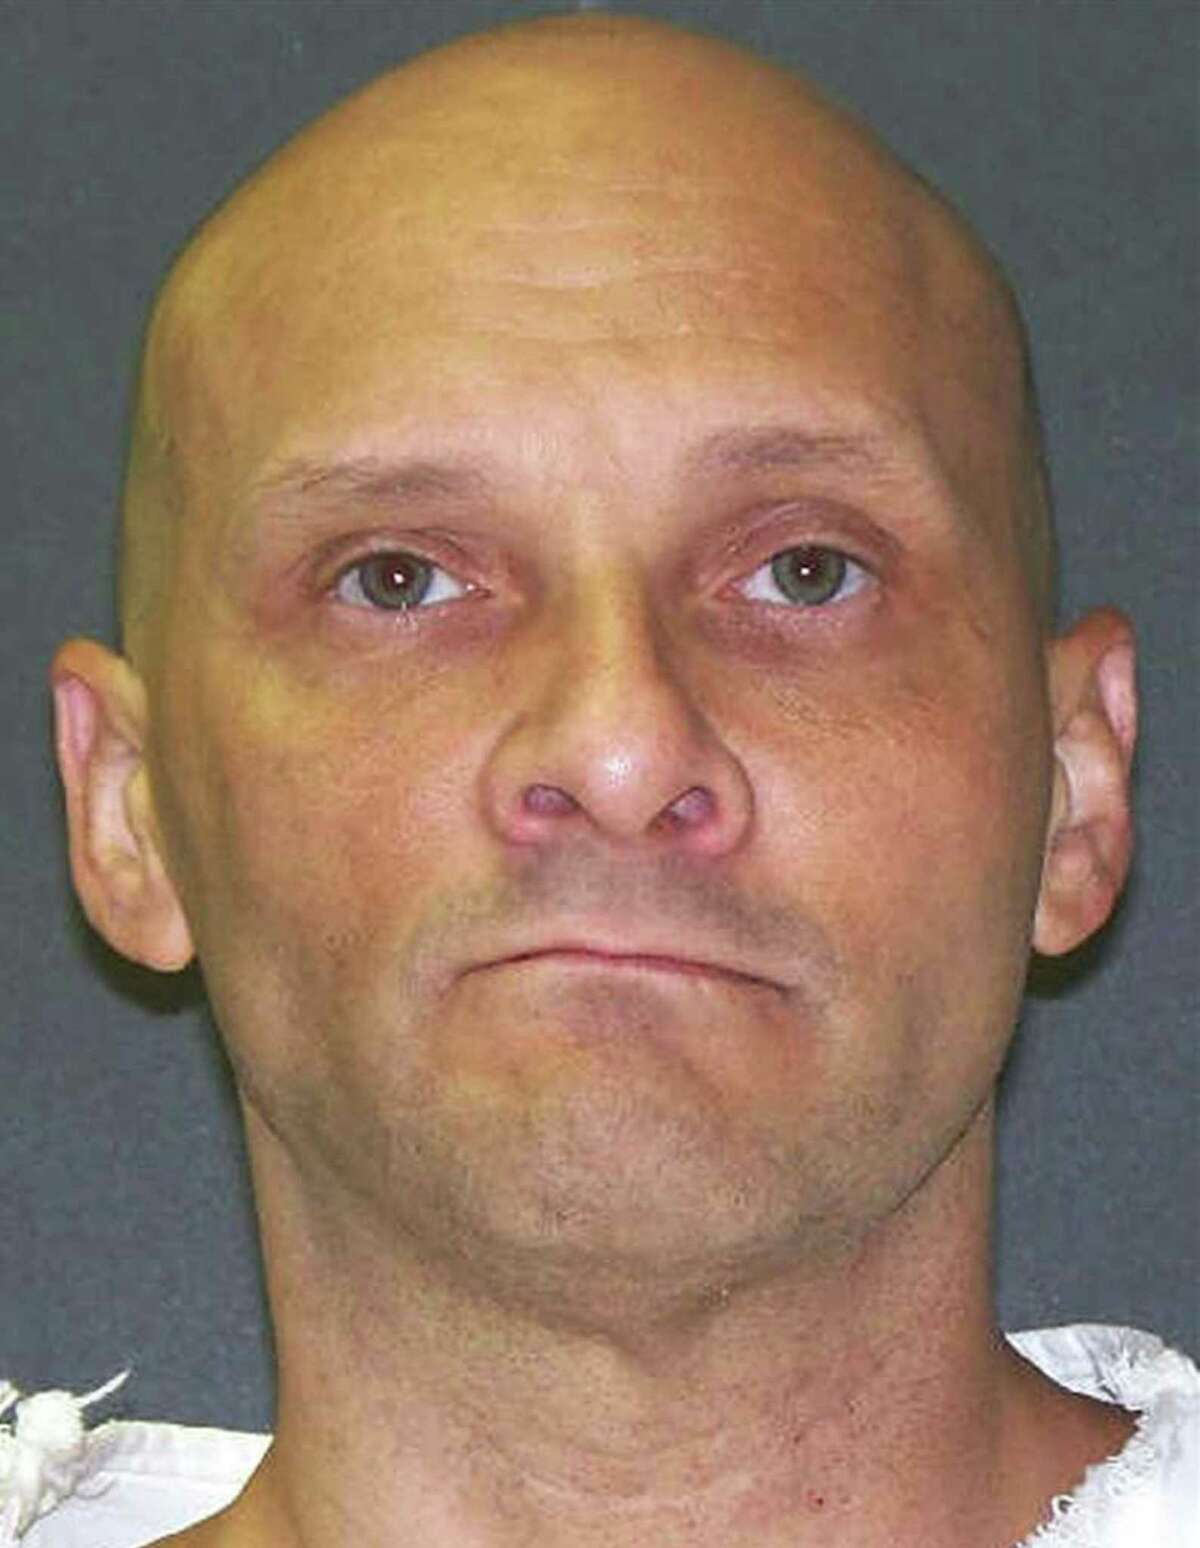 This handout photo courtesy of the Texas Department of Criminal Justice in Austin, Texas shows death row inmate Christopher Wilkins. Texas prison authorities were preparing January 11, 2017 to carry out the first US execution of 2017, as controversy continued to swirl around the drugs used to conduct such lethal injections. Christopher Wilkins, 48, is to be executed at 18H00 (0000 GMT January 12) at the Texas state penitentiary at Huntsville, barring a last-minute reprieve from the US Supreme Court. / AFP PHOTO / Texas Department of Criminal Justice / HO / RESTRICTED TO EDITORIAL USE - MANDATORY CREDIT